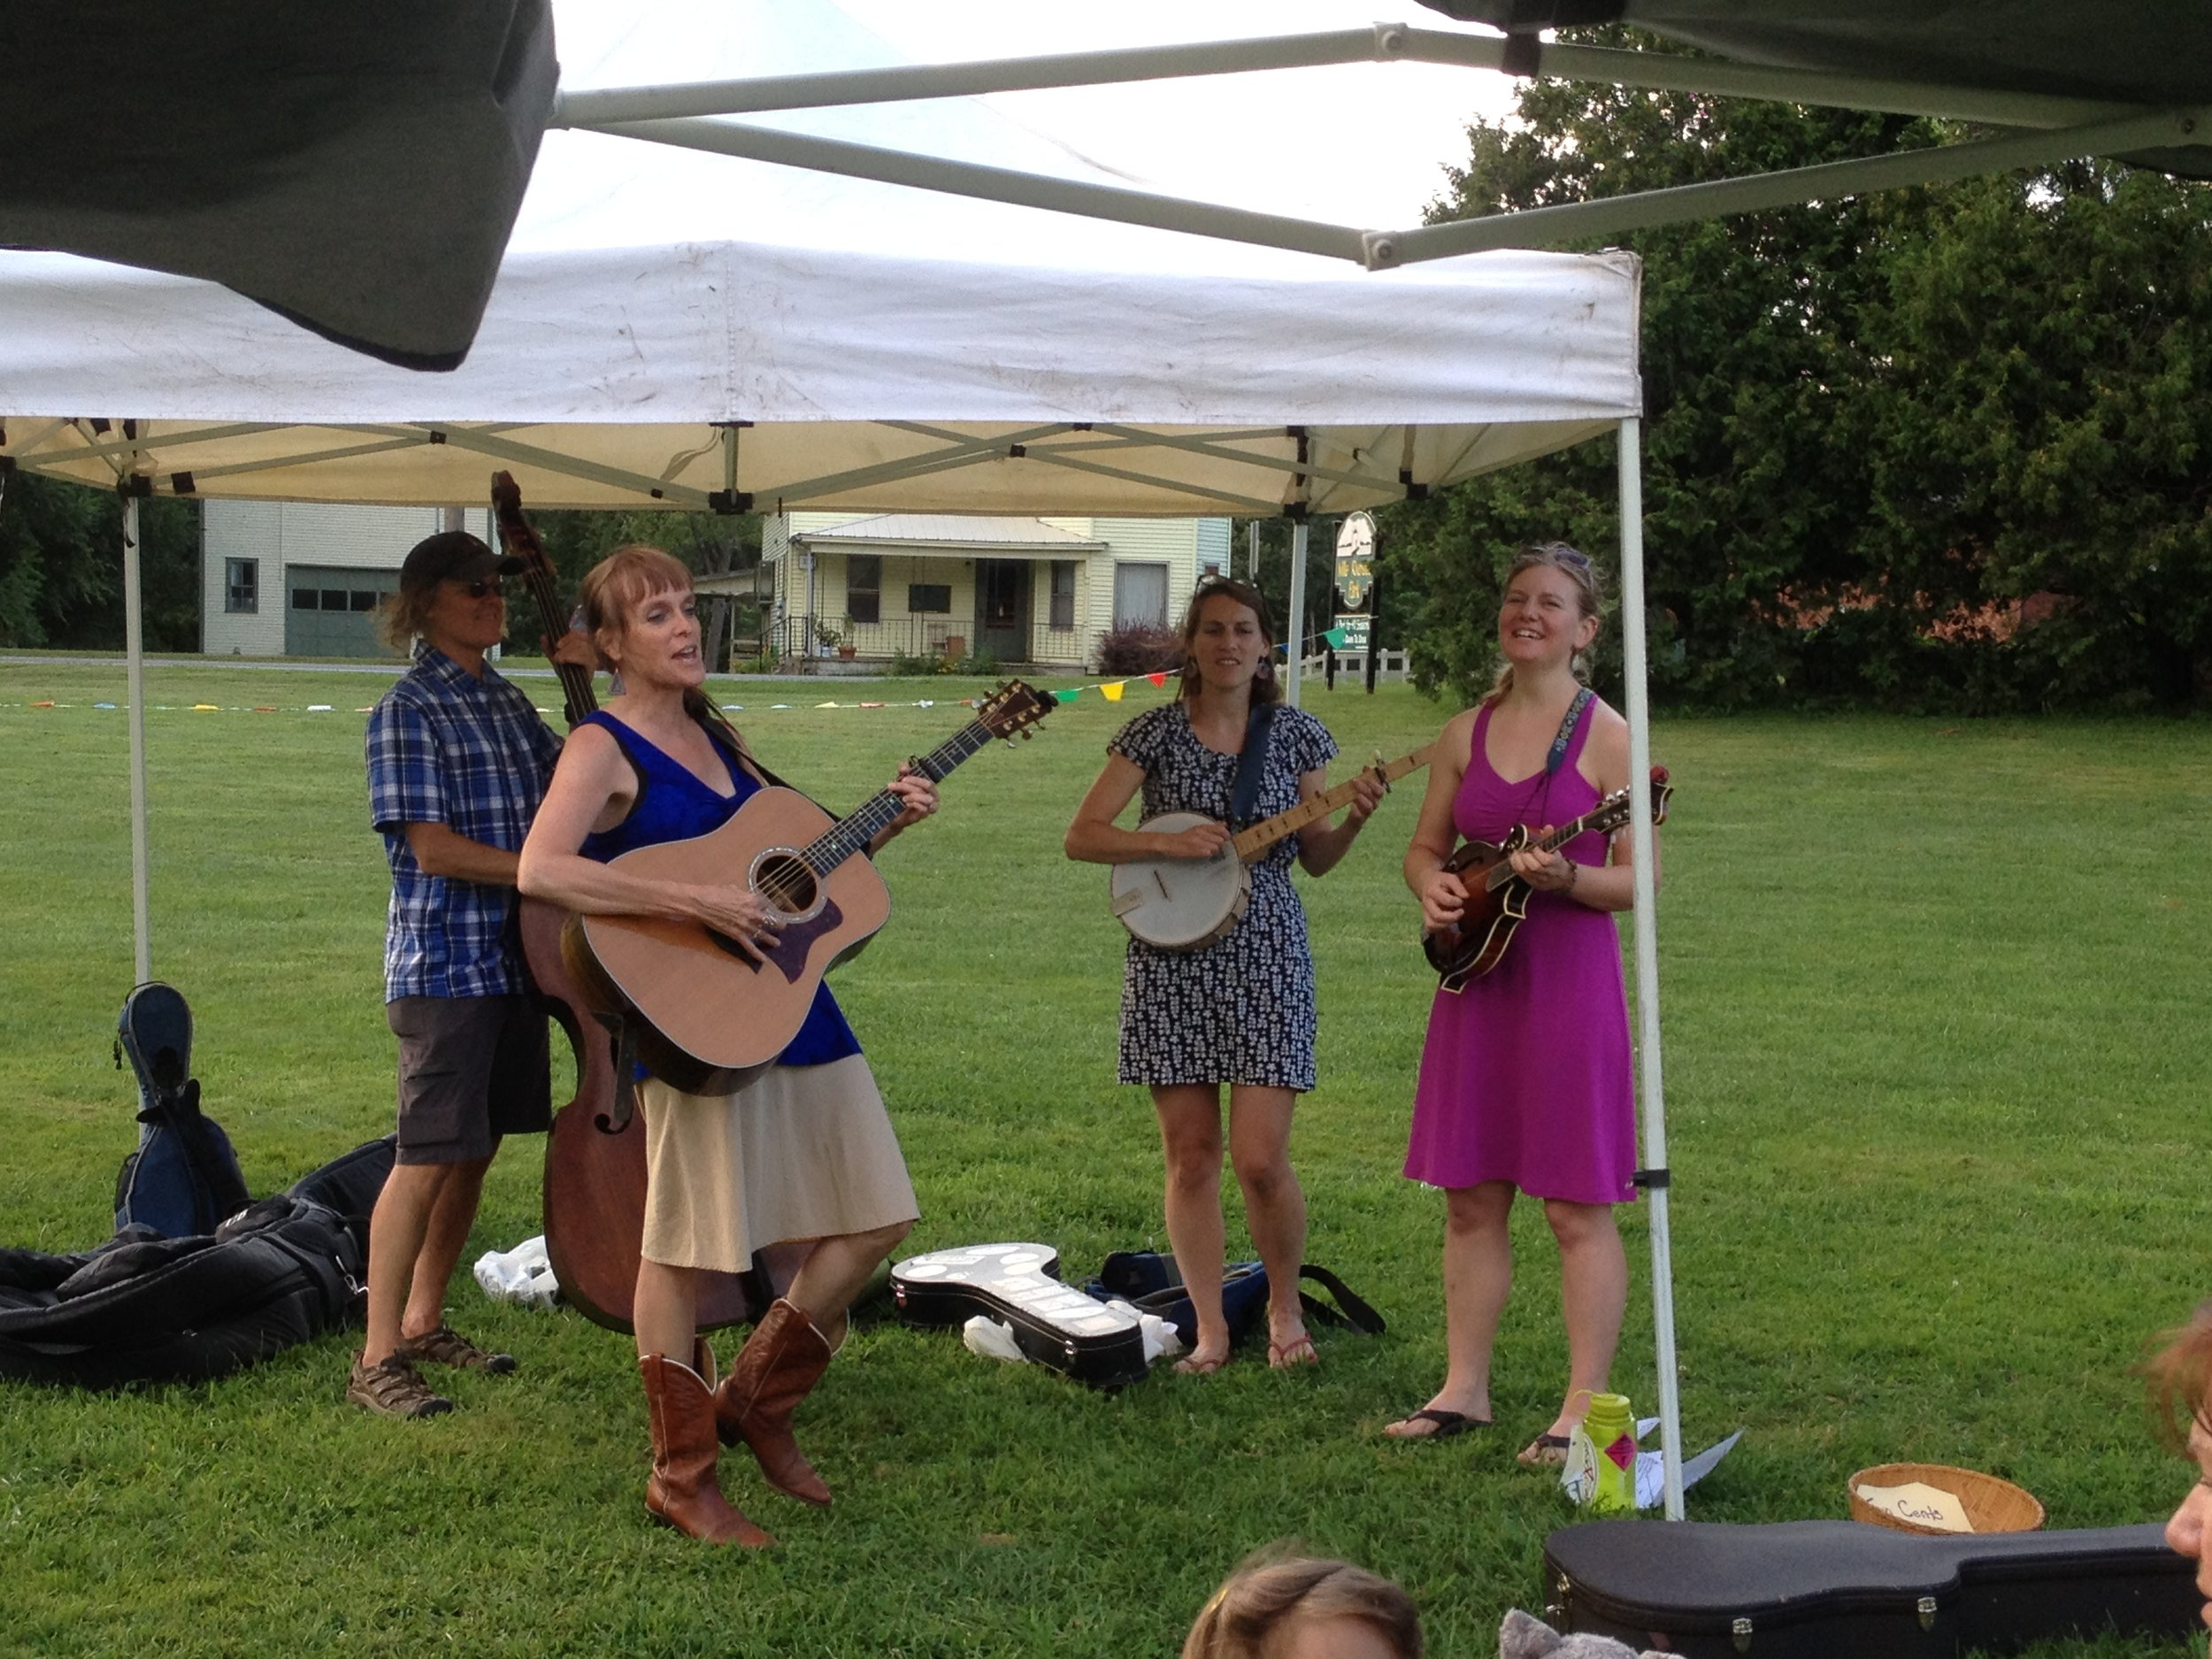 Music at the Market - Our popular Music at the Market program creates a festive community atmosphere.Enjoy a picnic of some fresh market produce or prepared food from our vendors and listen to some music while you visit with friends and neighbors!